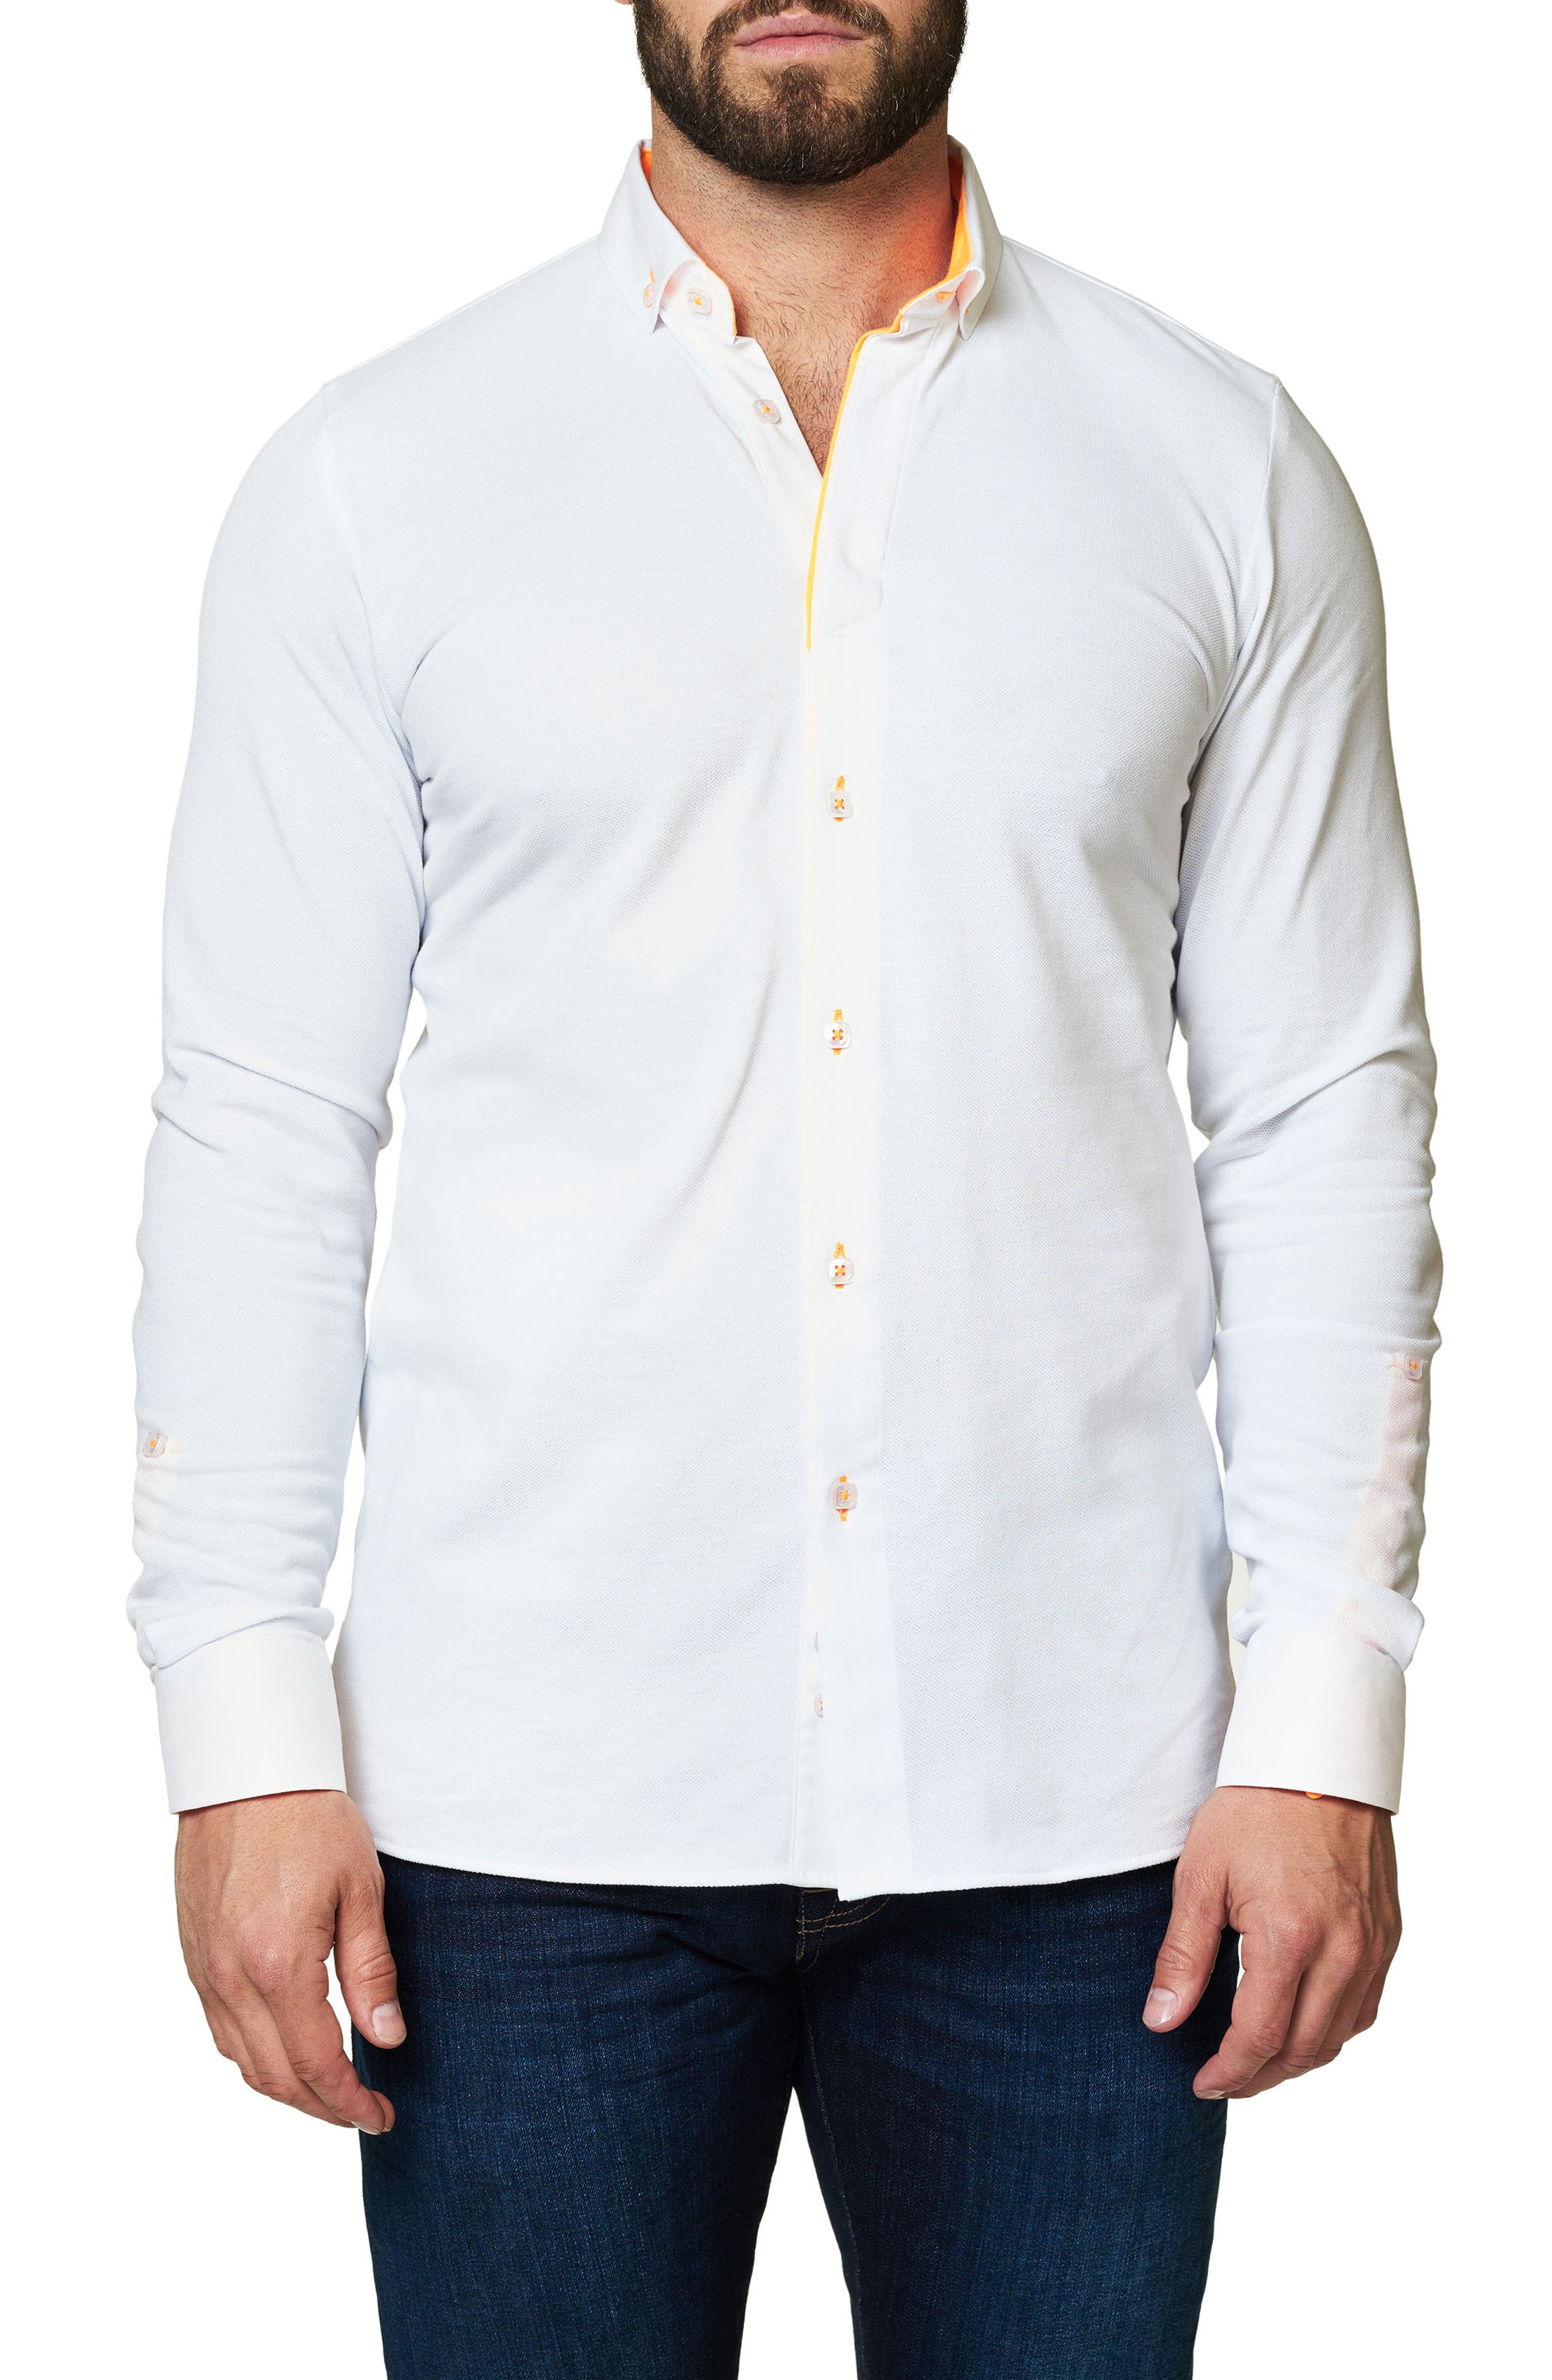 Alternate Image 1 Selected - Maceoo Long Sleeve Sport Shirt